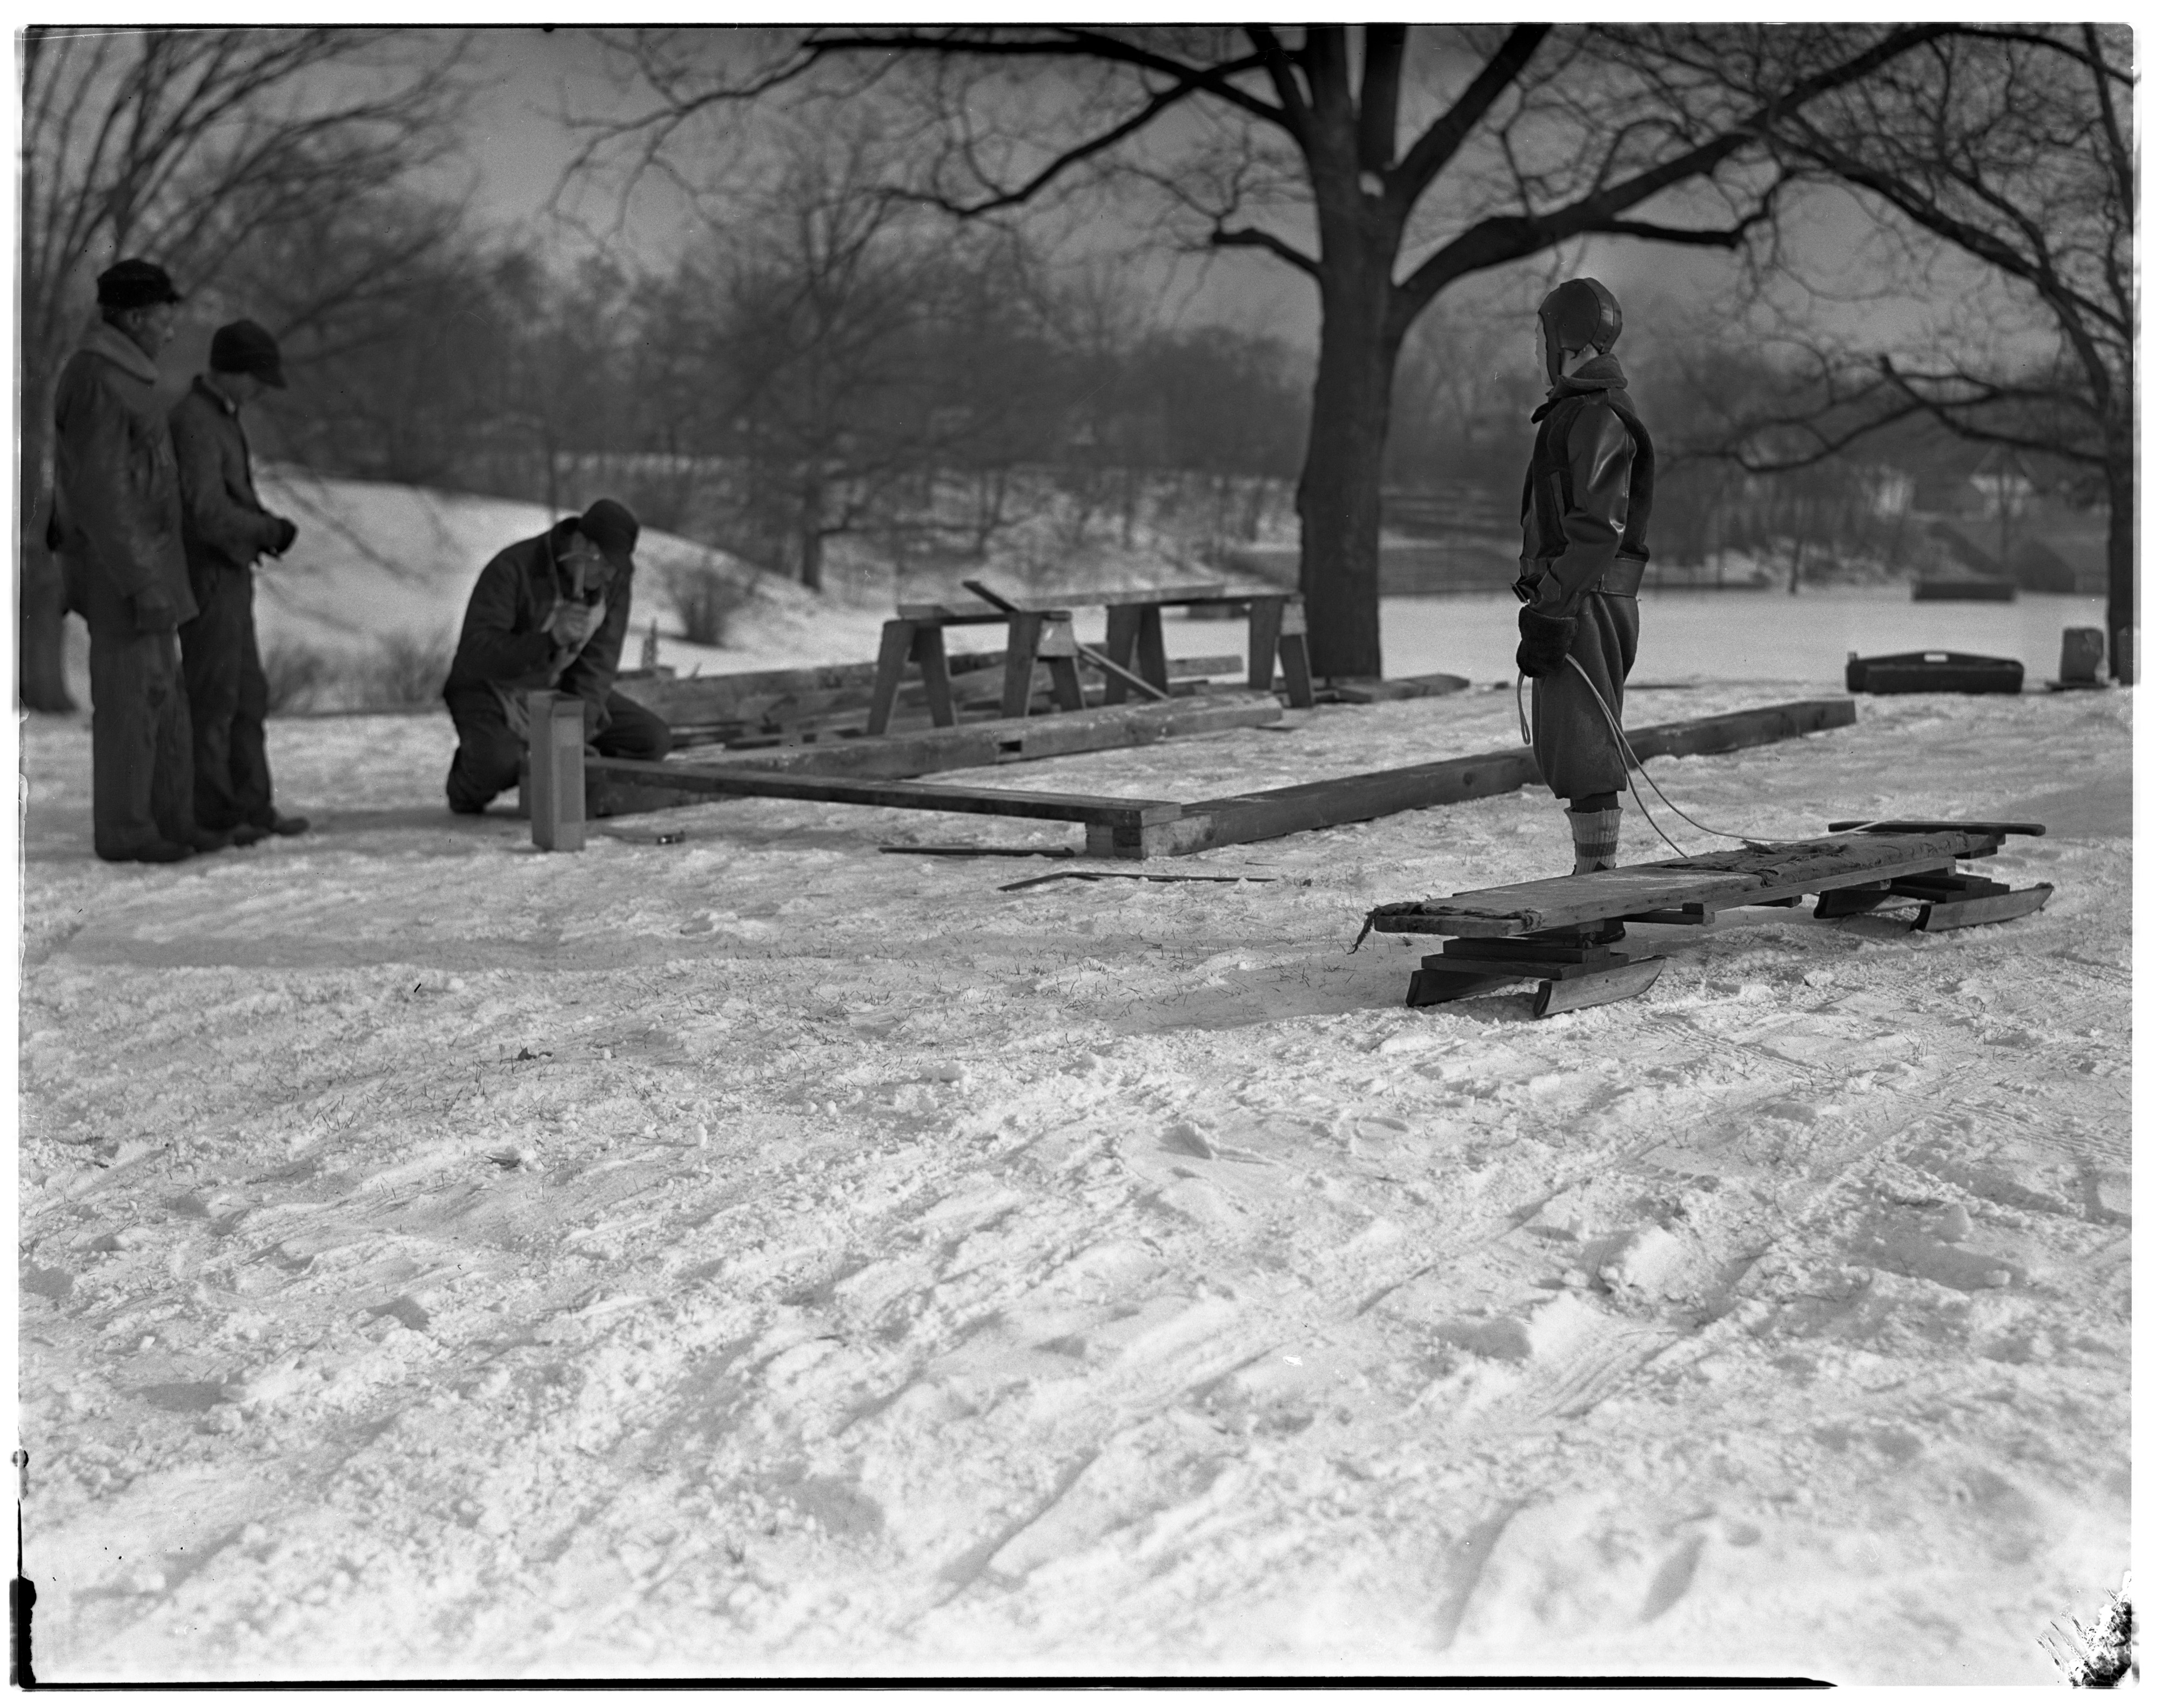 Sledding in Burns Park image